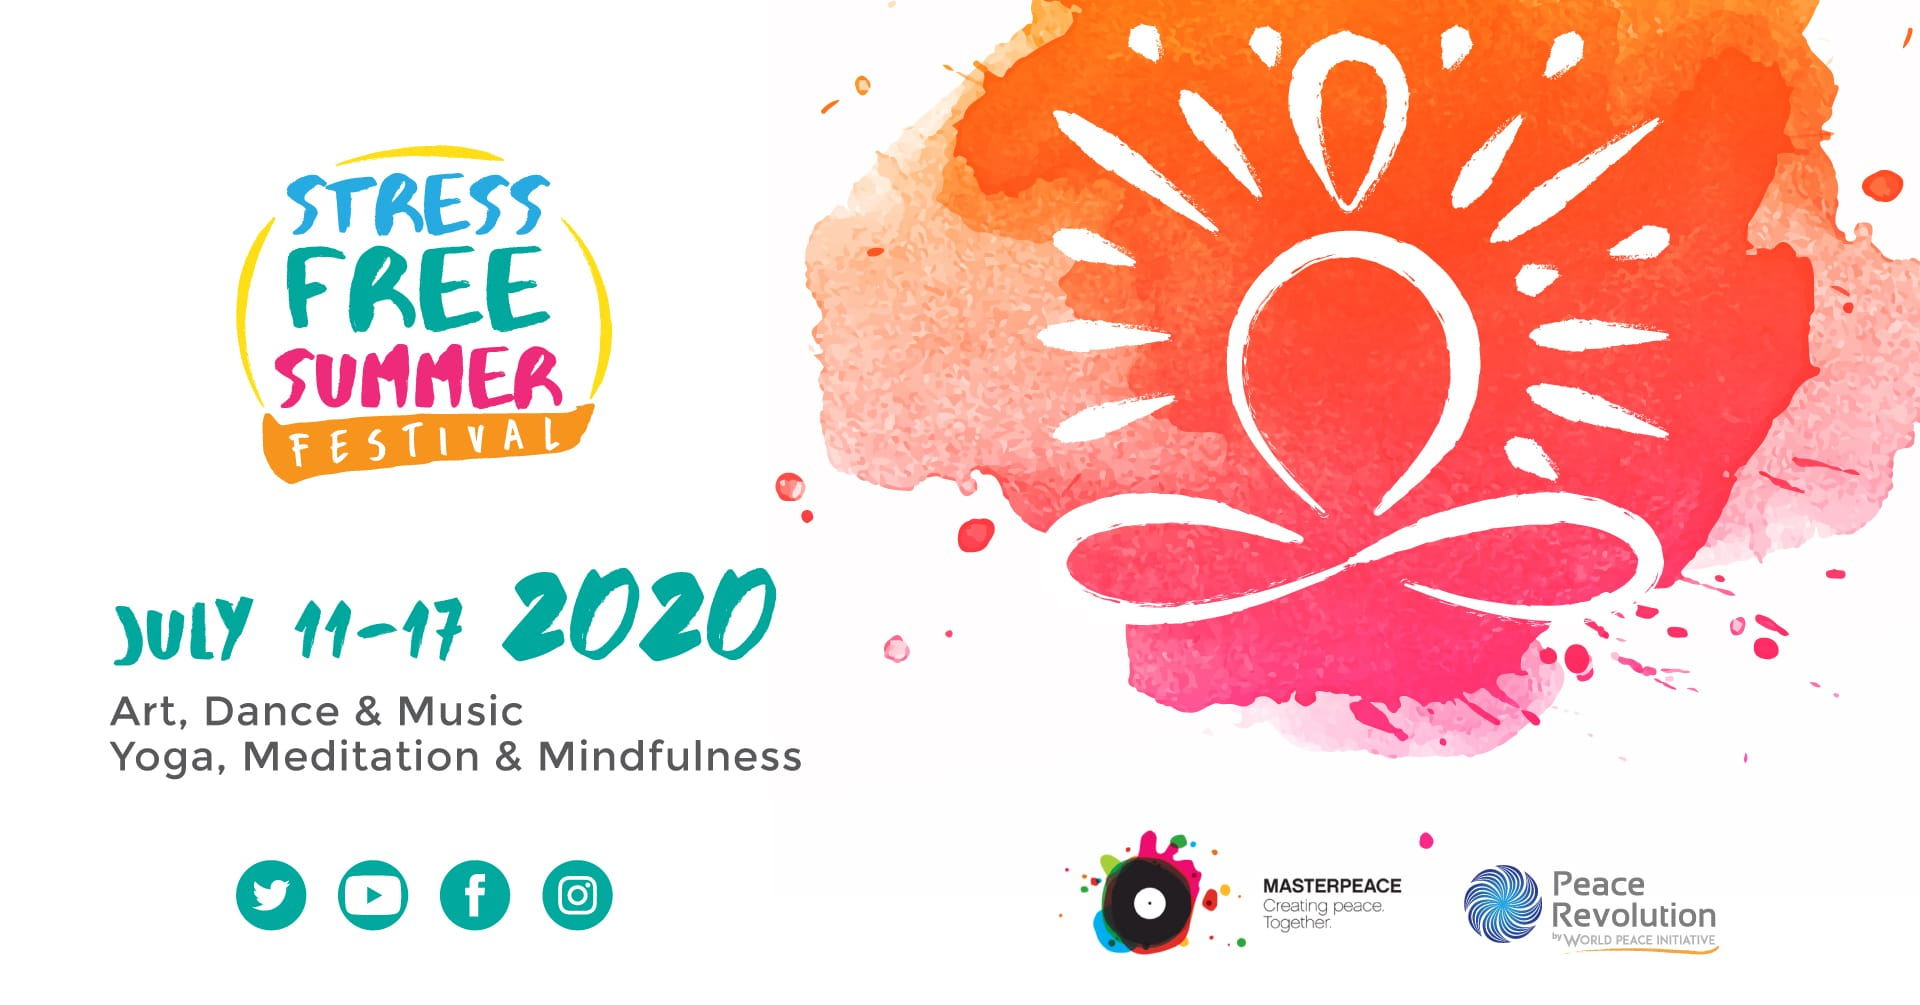 Co-Creating a Festival for a Stress Free Summer